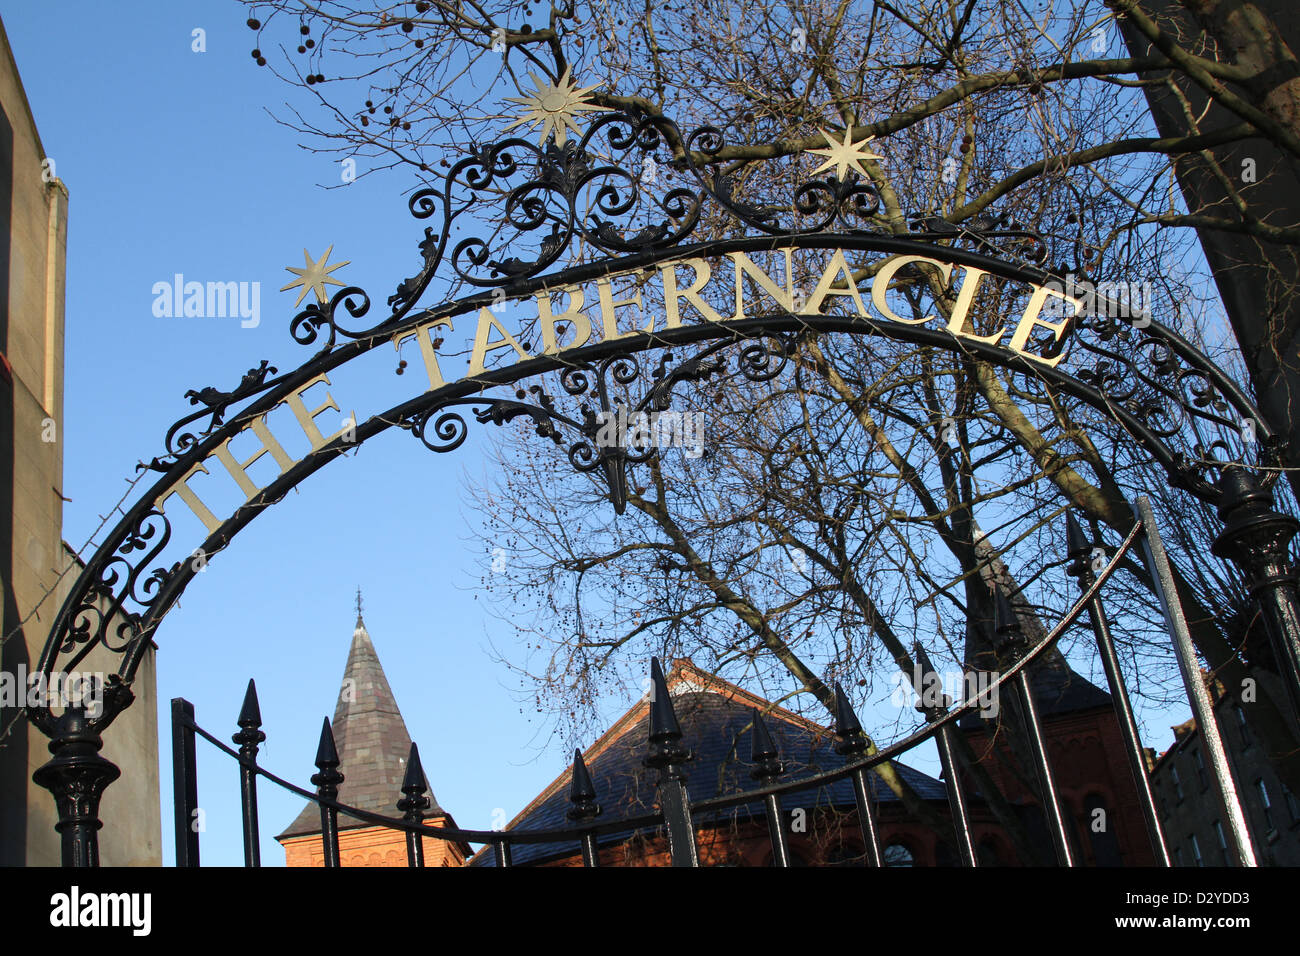 The Tabernacle, Notting Hill, West London, UK - Stock Image